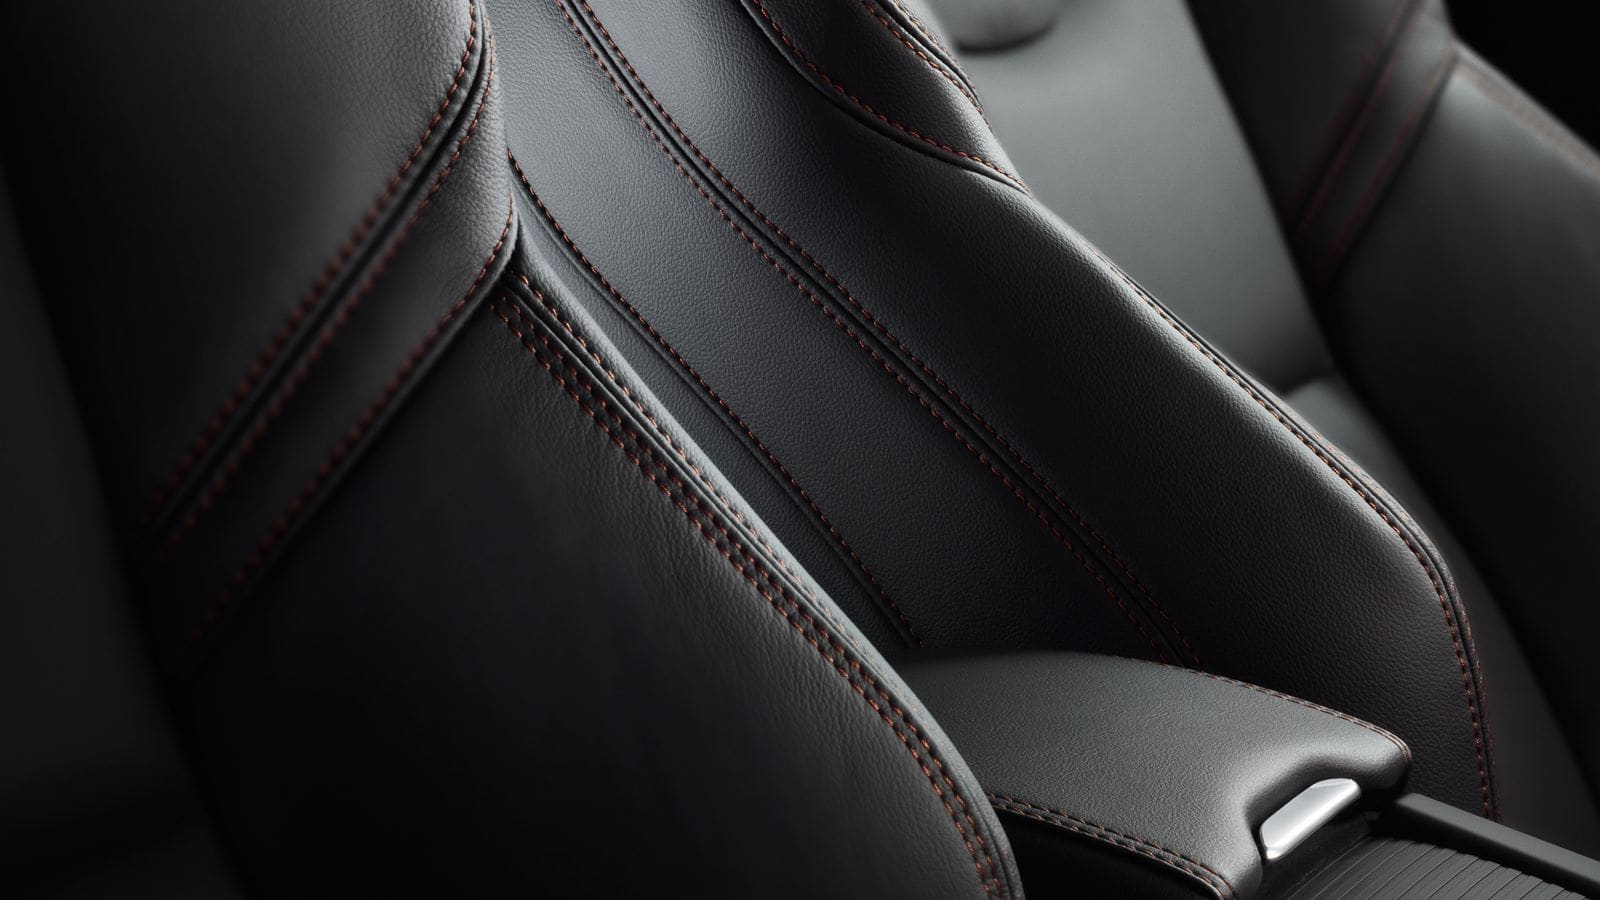 volvo-s60-crosscountry-interior-seats-details-v1